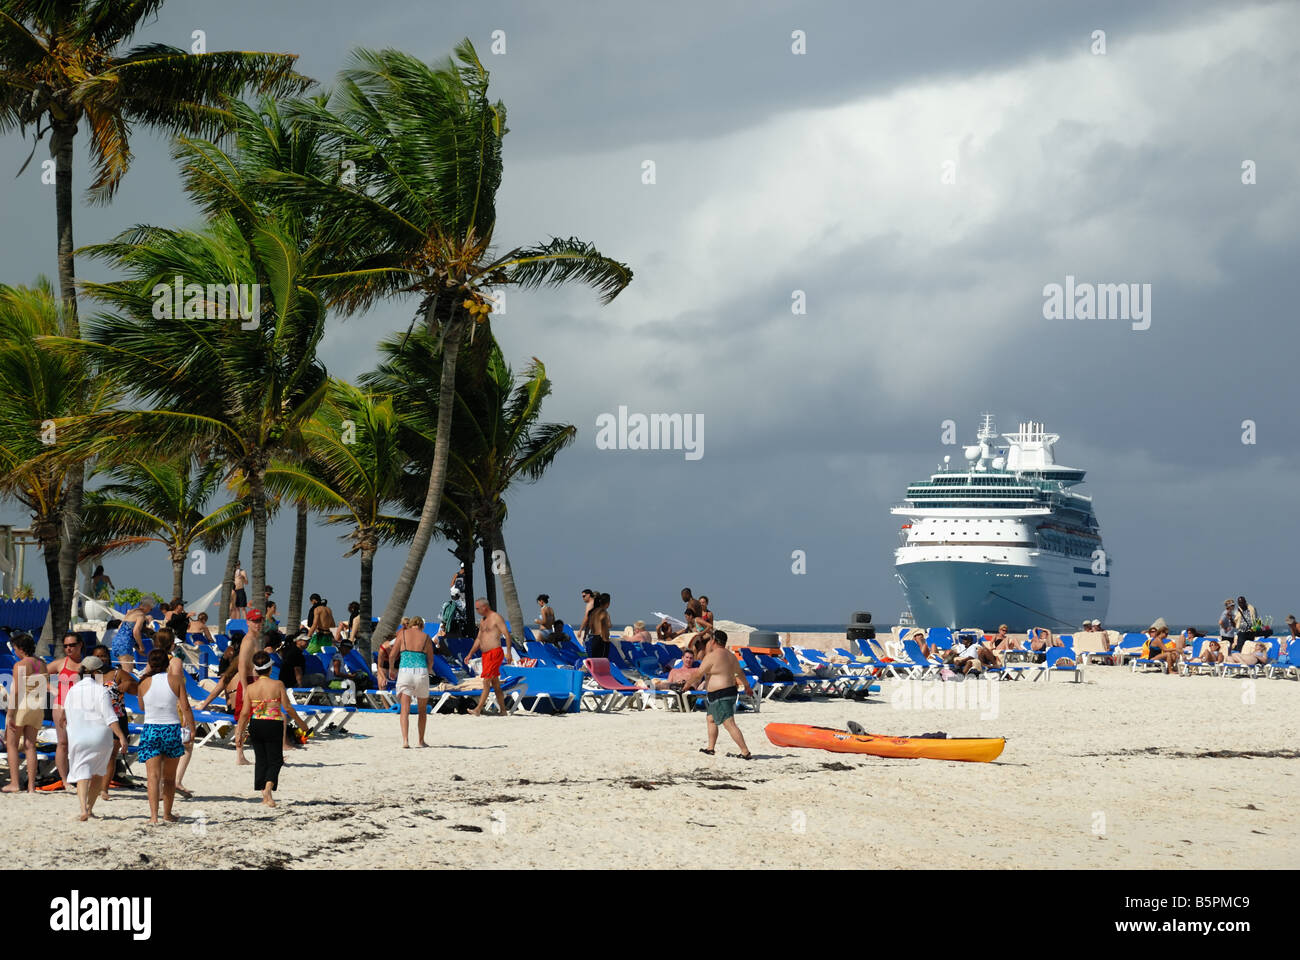 The Royal Caribbean ship Majesty of the Seas can be seen in the distance from the beach at Little Stirrip Cay, Bahamas - Stock Image